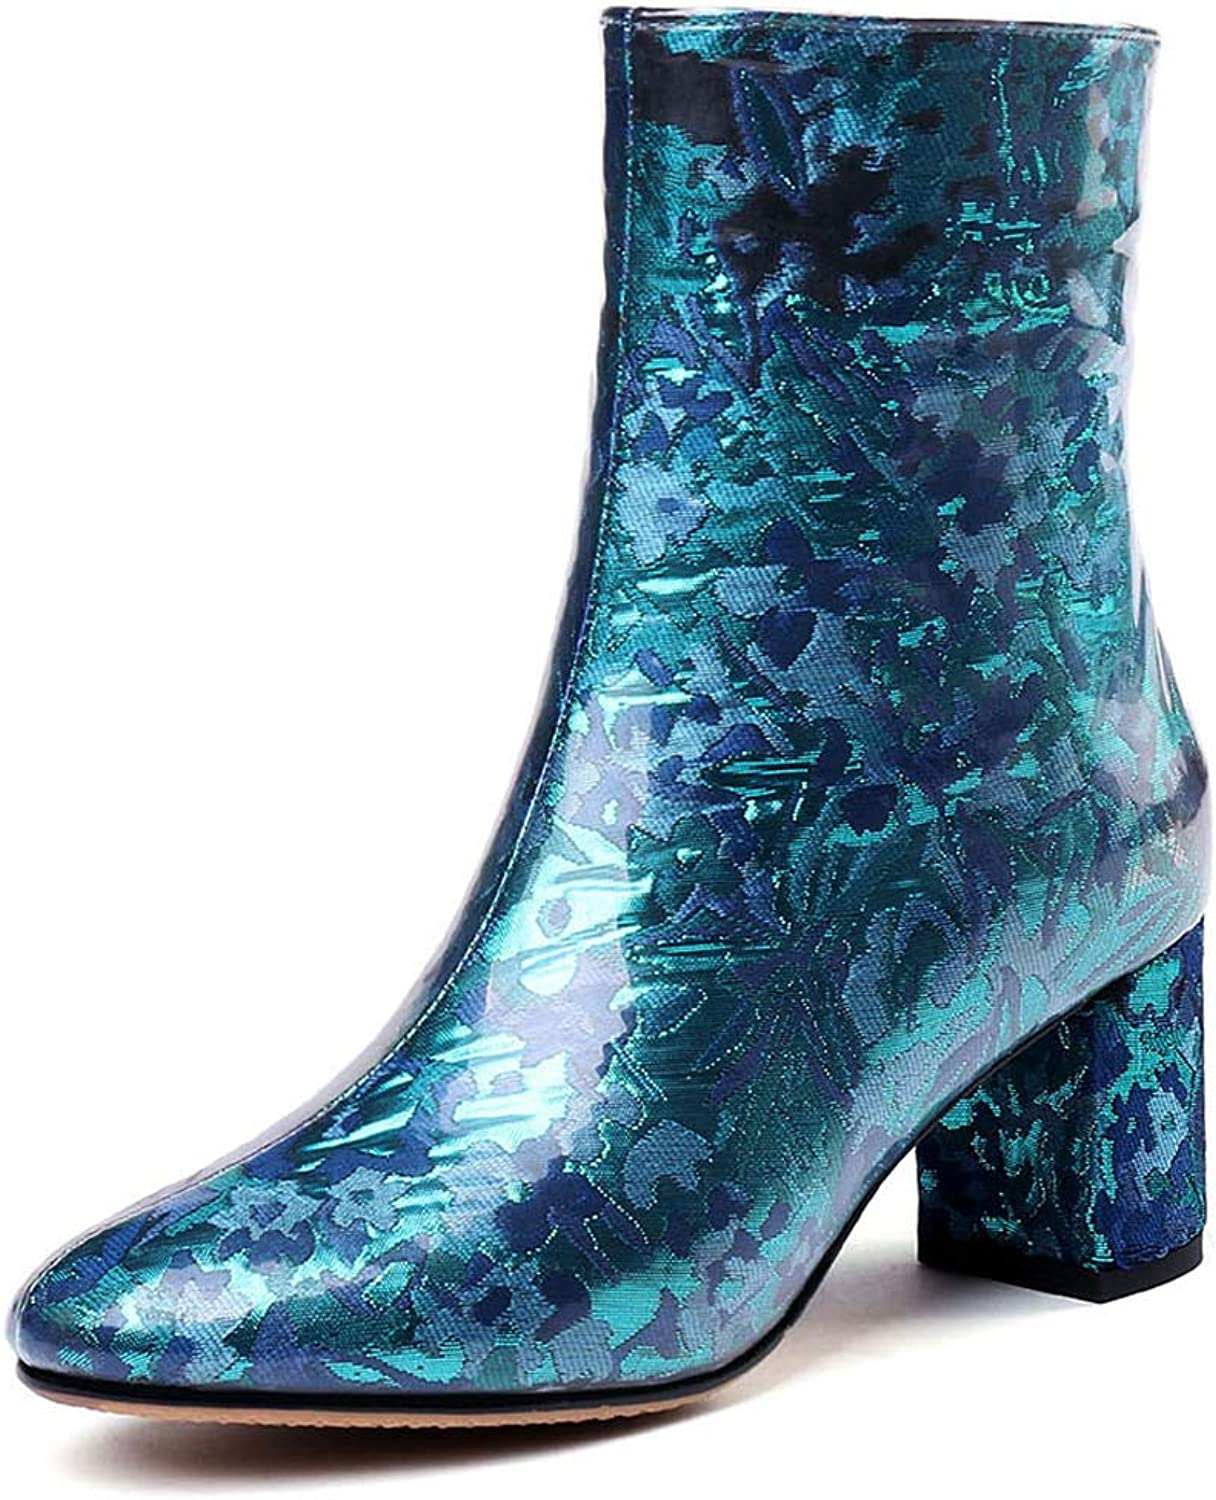 Women's Booties, Winter Floral Satin Ladies Fashion Boots Thick High Heel Leather Lining Pointed Martin Boots (color   B, Size   36)